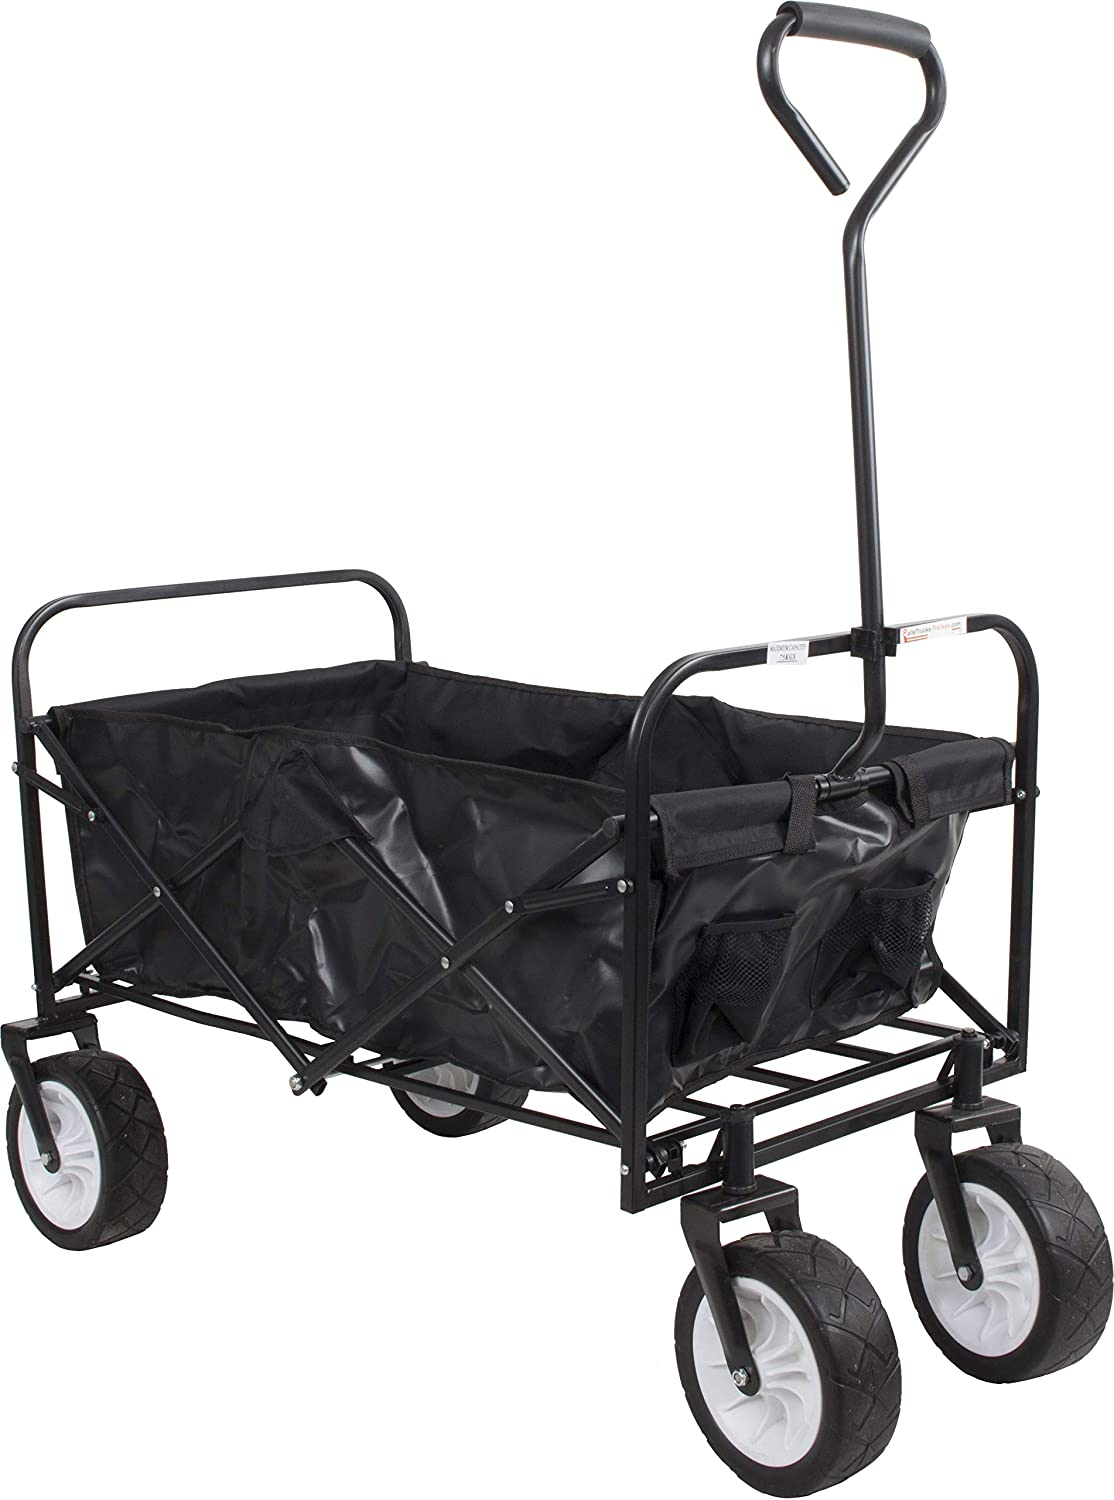 70kg Folding Garden Festival Beach Camping Trolley Wagon Hand Cart Wide Wheel SafetyLiftinGear